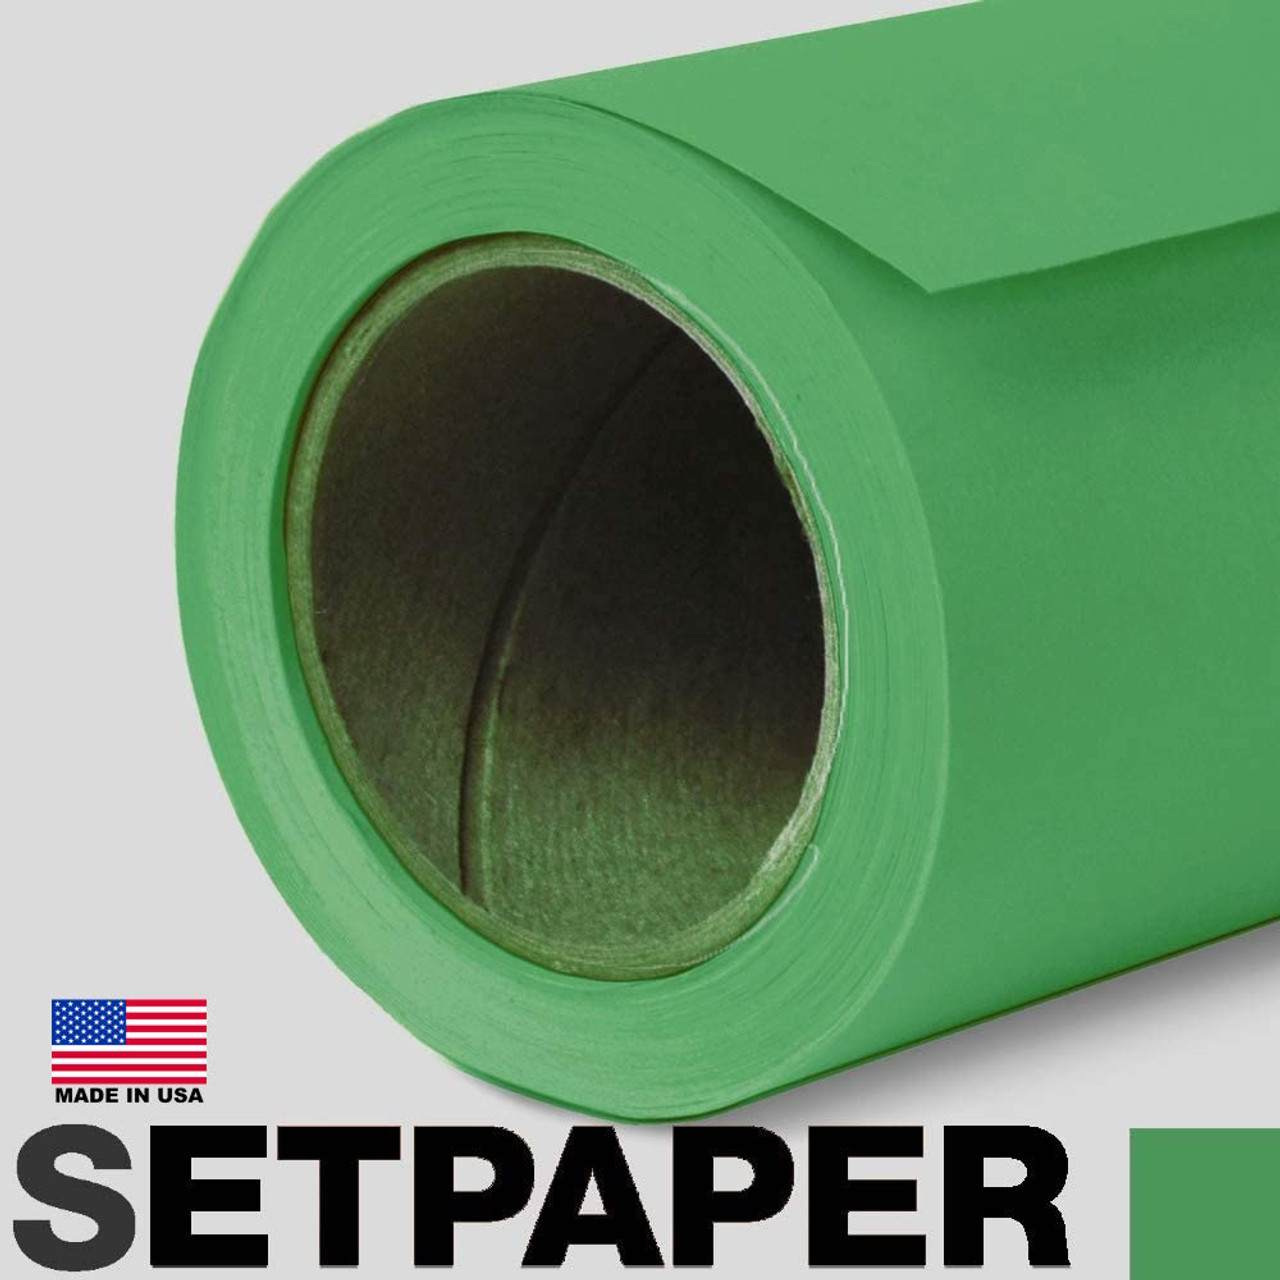 "SETPAPER - 28-BRIGHT GREEN (CHROMA) 96"" x 36' (2.4 x 11m) Shipping Friendly"